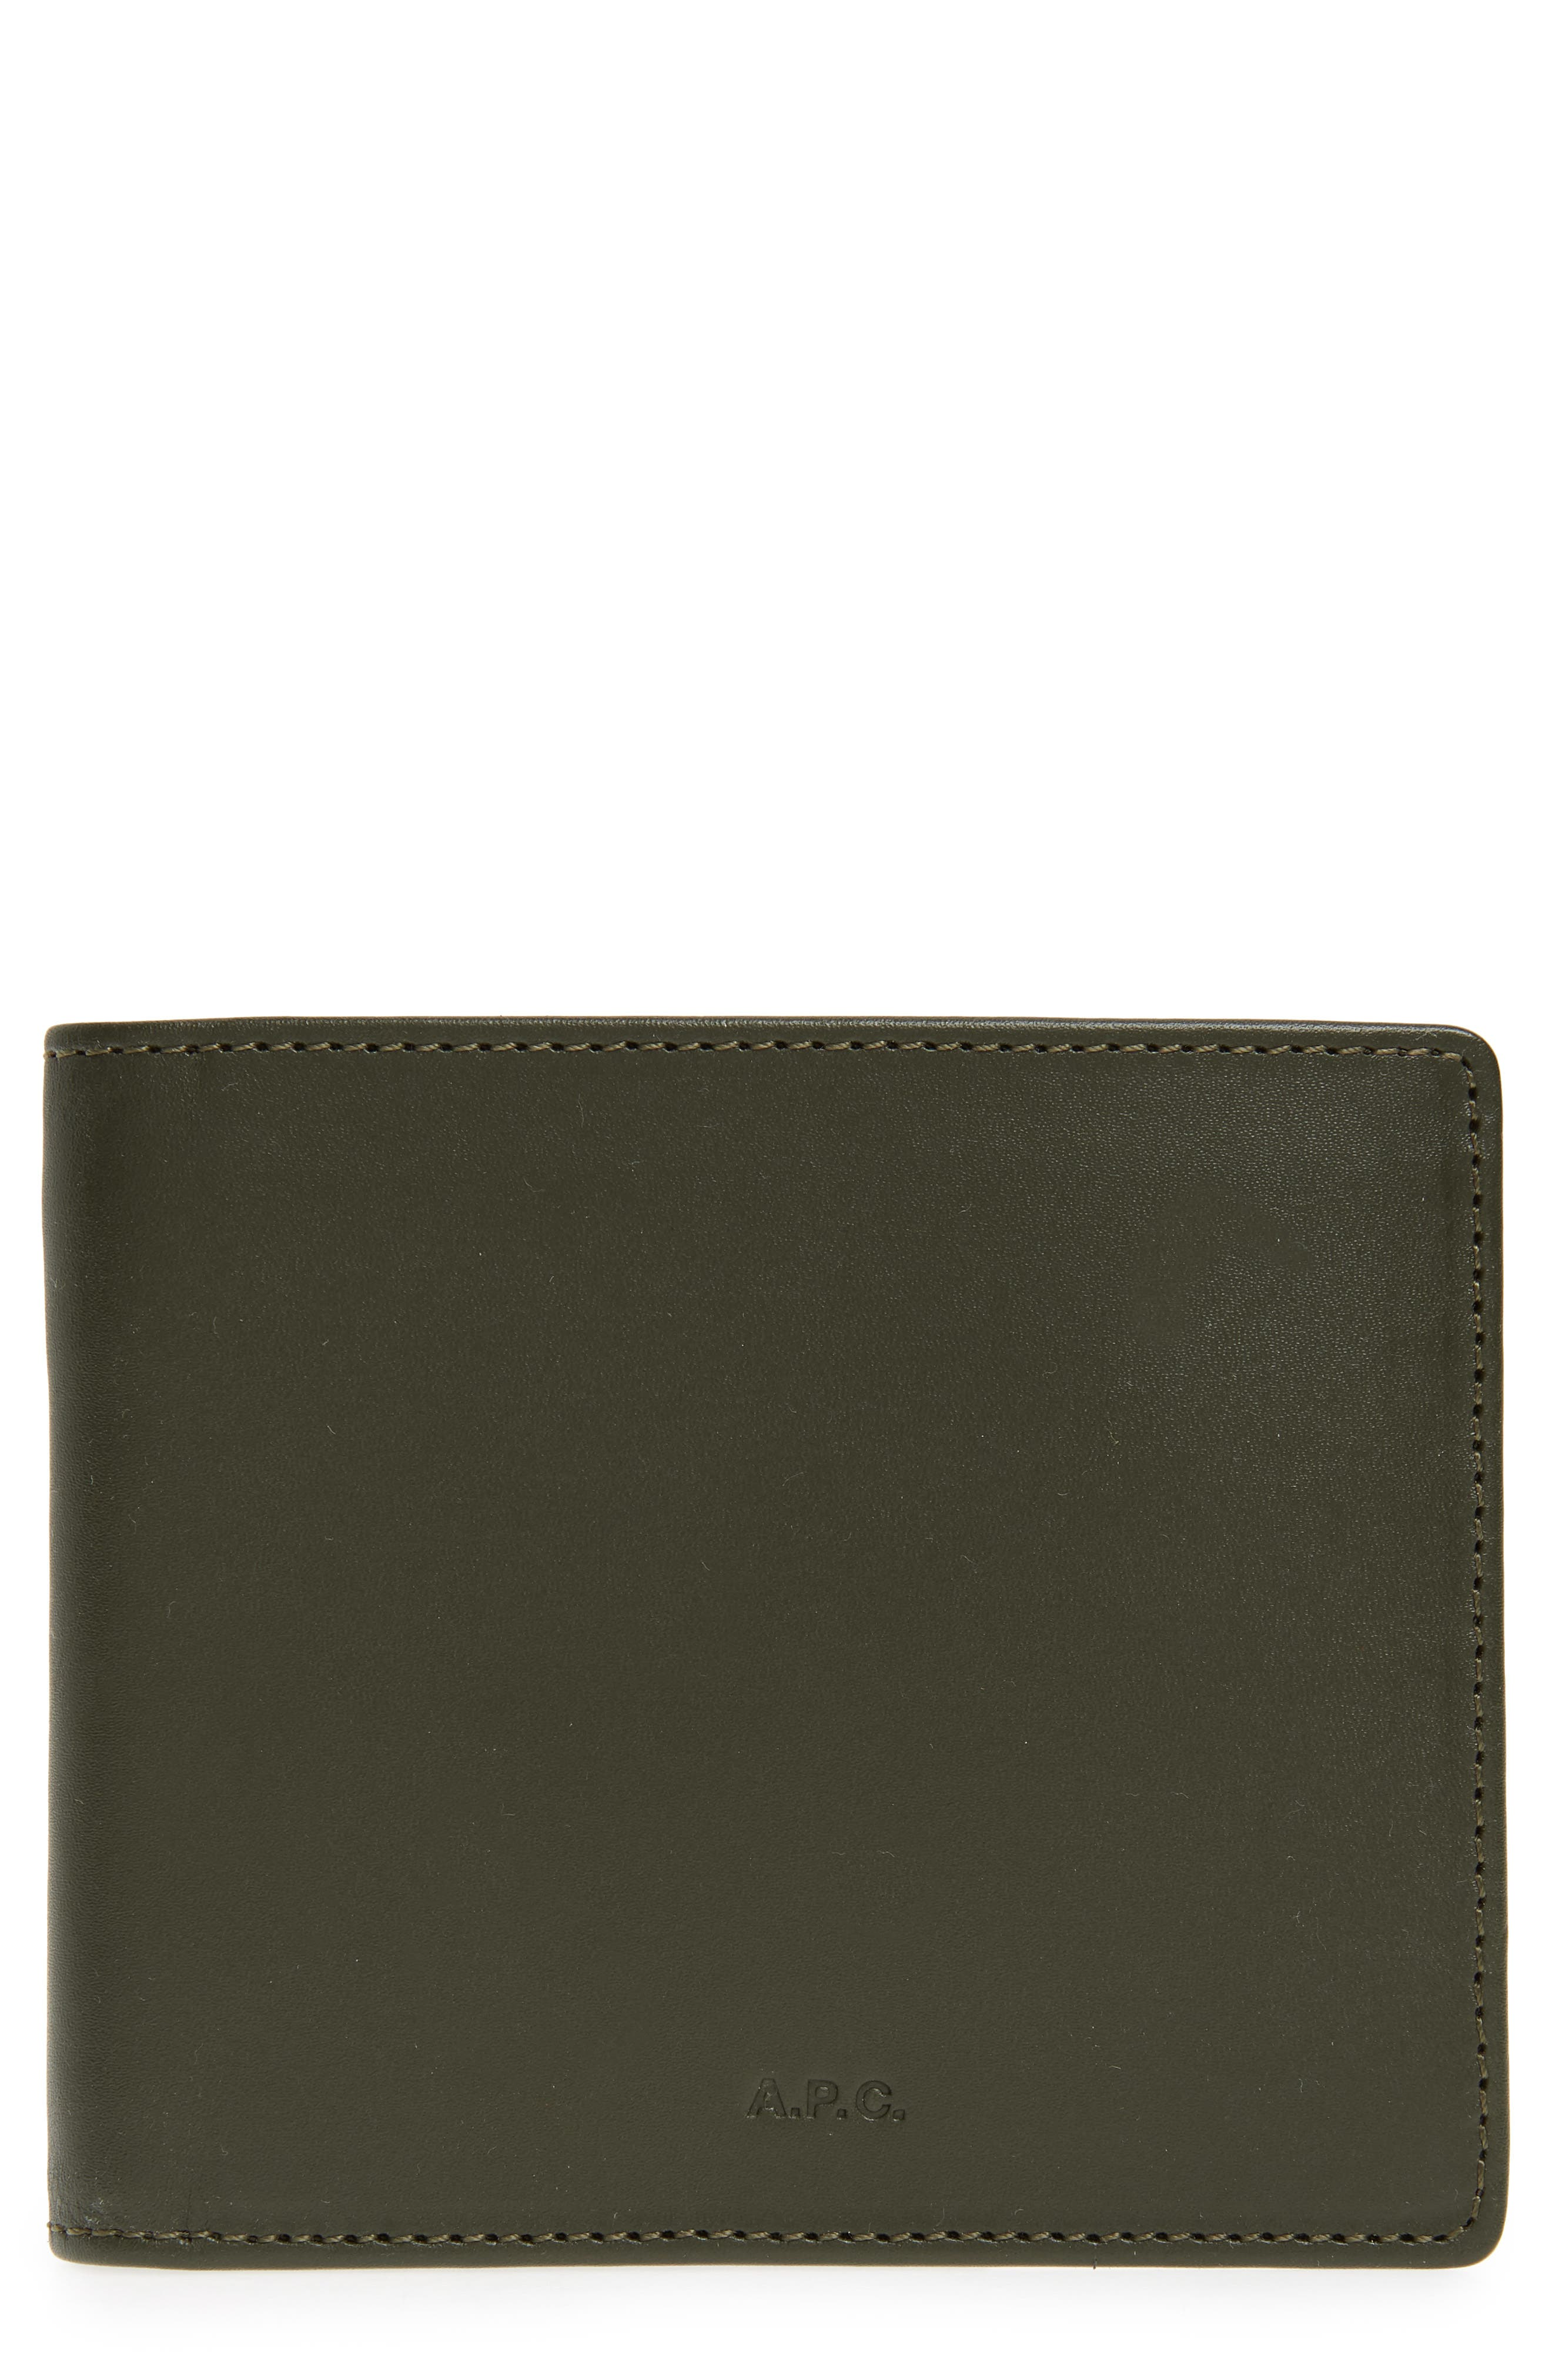 A.P.C. Aly Bifold Leather Wallet